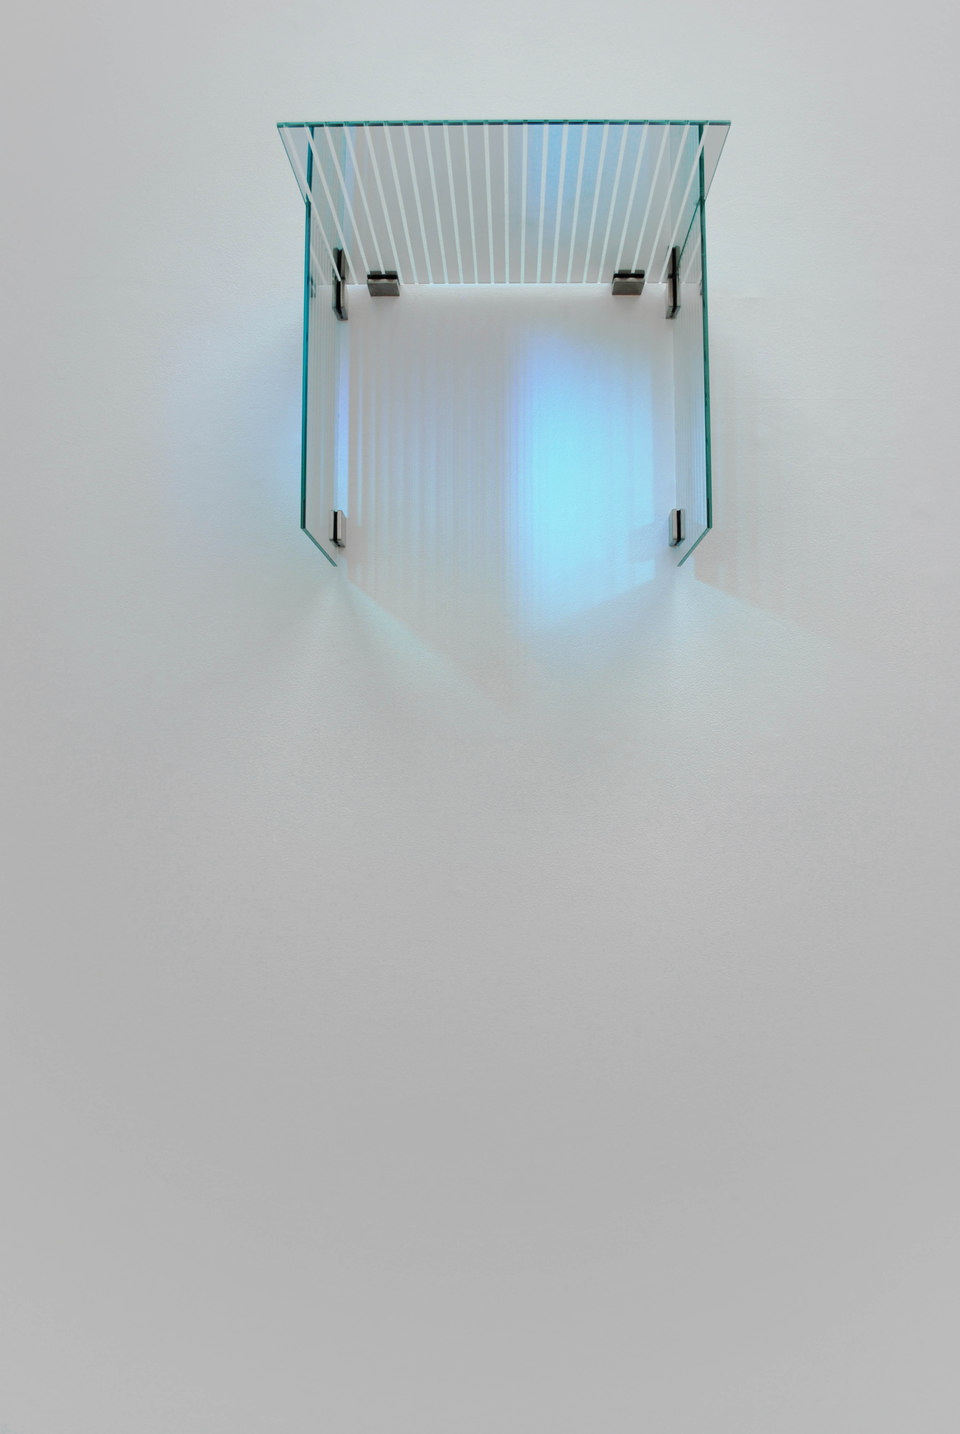 George Henry Longly, Traditional classic fade, 2009, laminated Venetian stripe mirrors (3 parts),fixings, (51 x 62 x 51 cm), Cell Project Space